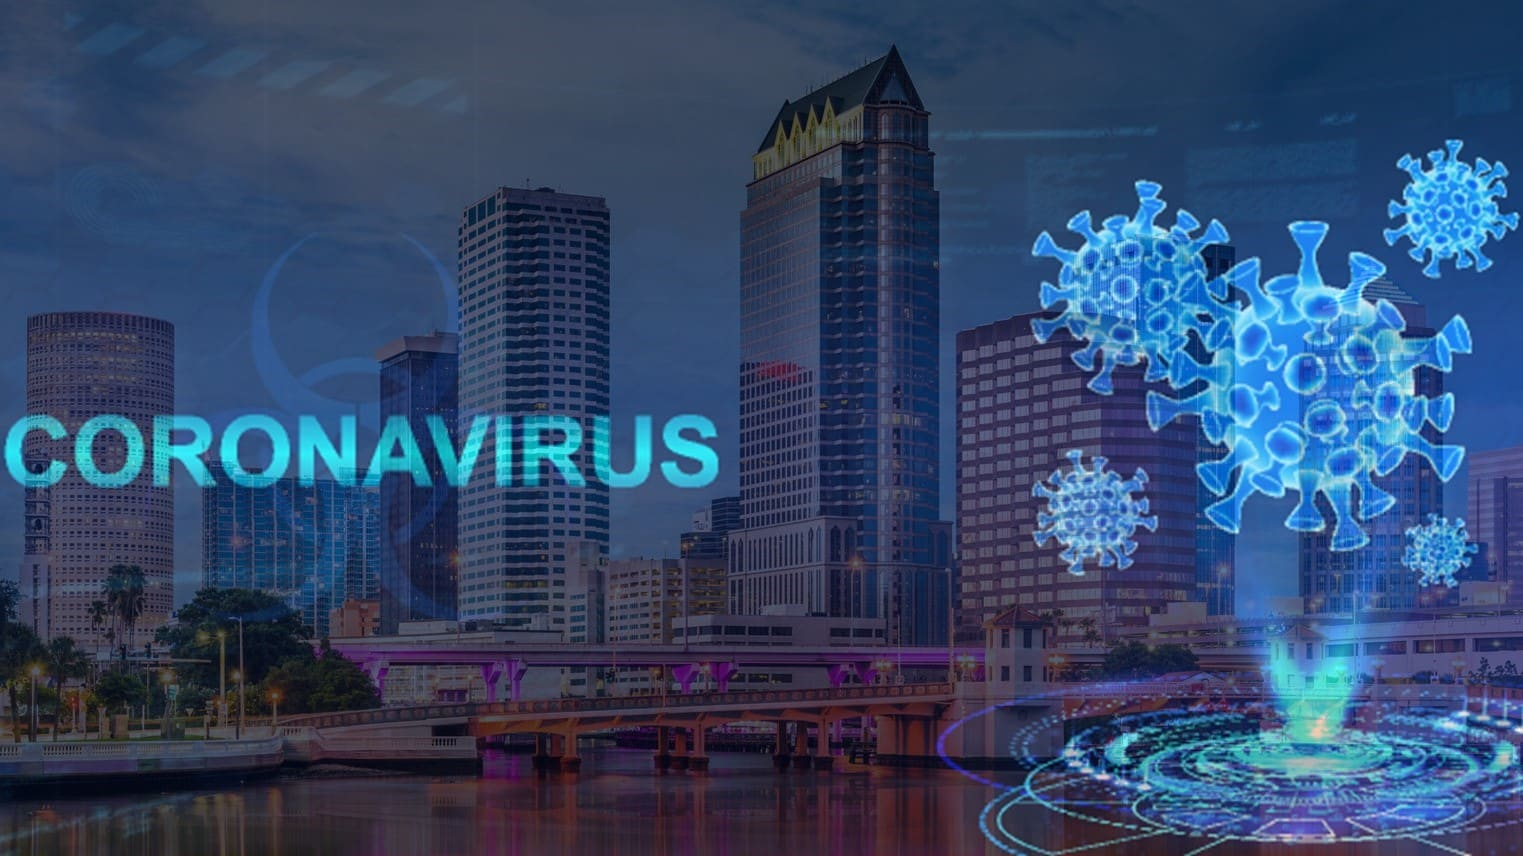 Tampa Bay Commercial Buildings and Coronavirus